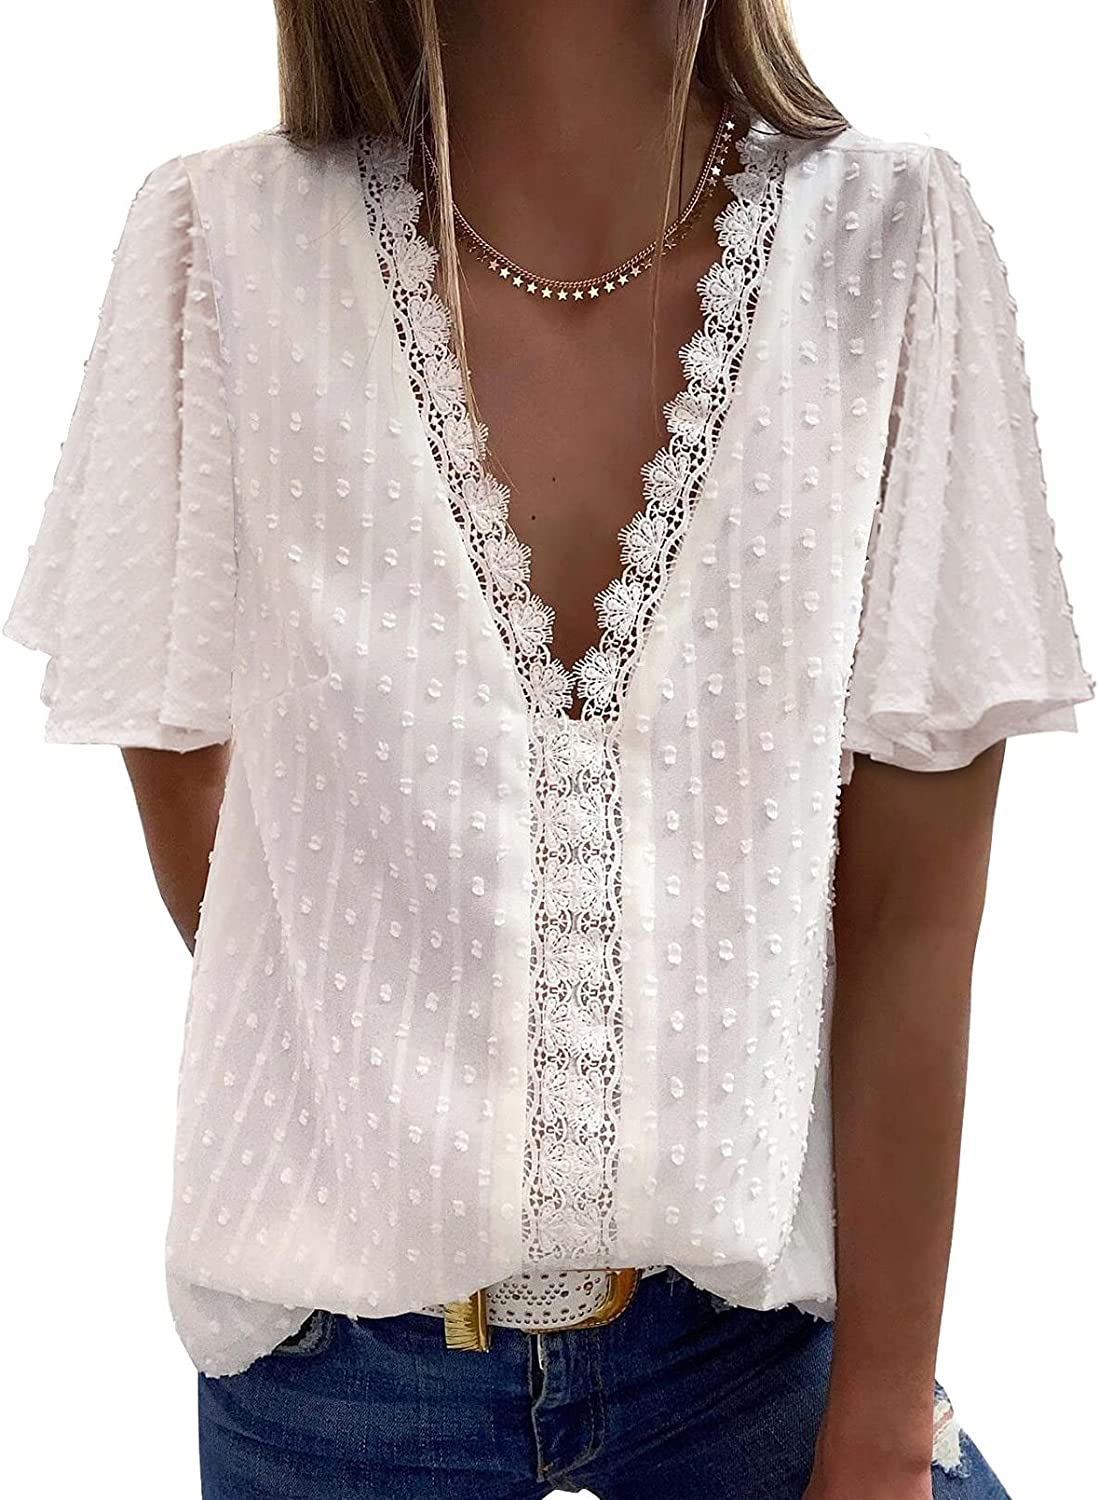 Ecrocoo Womens Sexy V Neck Short Sleeve Lace Summer Shirts Blouses Vintage Elegant Tunic Tops